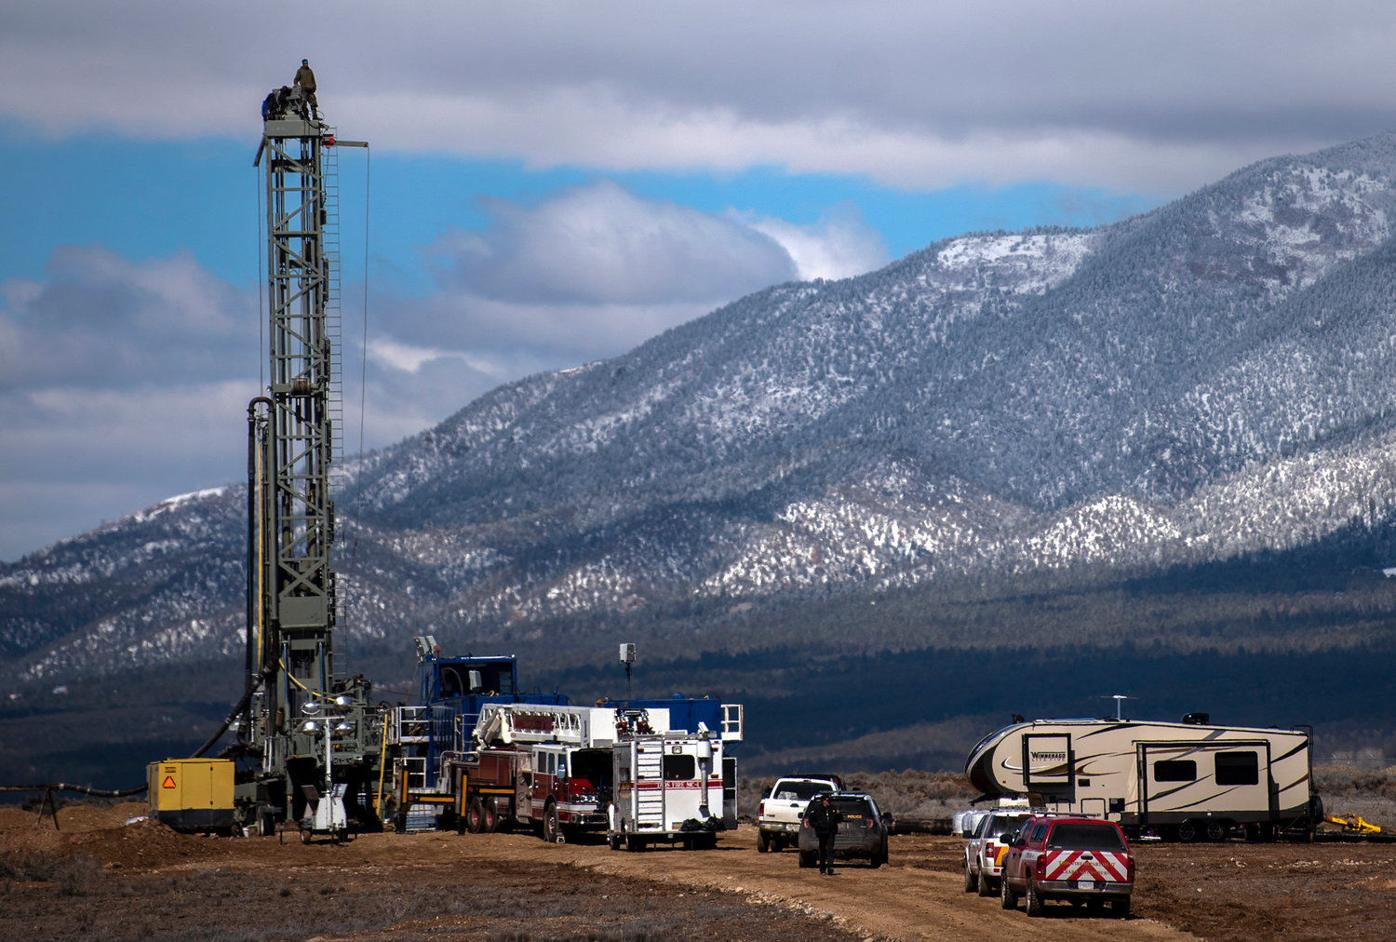 Taos water protectors protest new wells